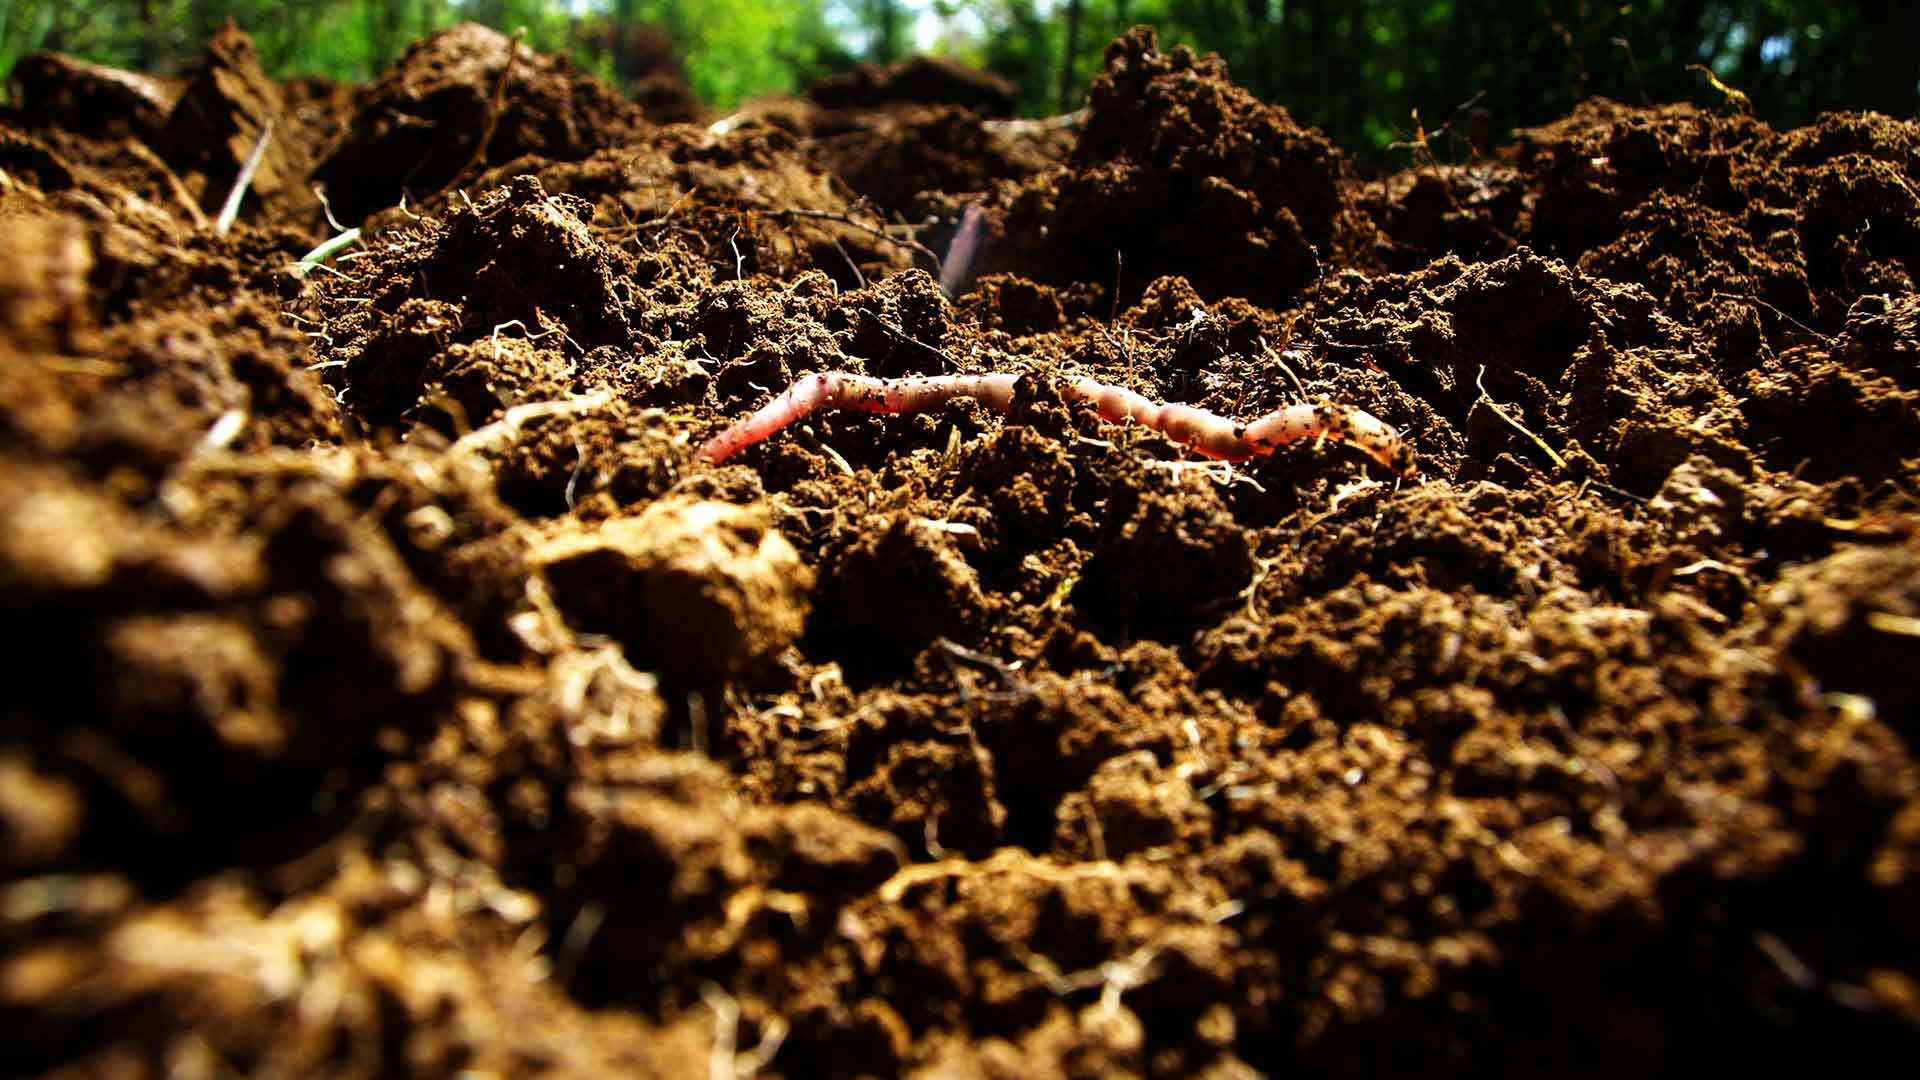 Organic Farming Impacts on Soil, Food and Human Health